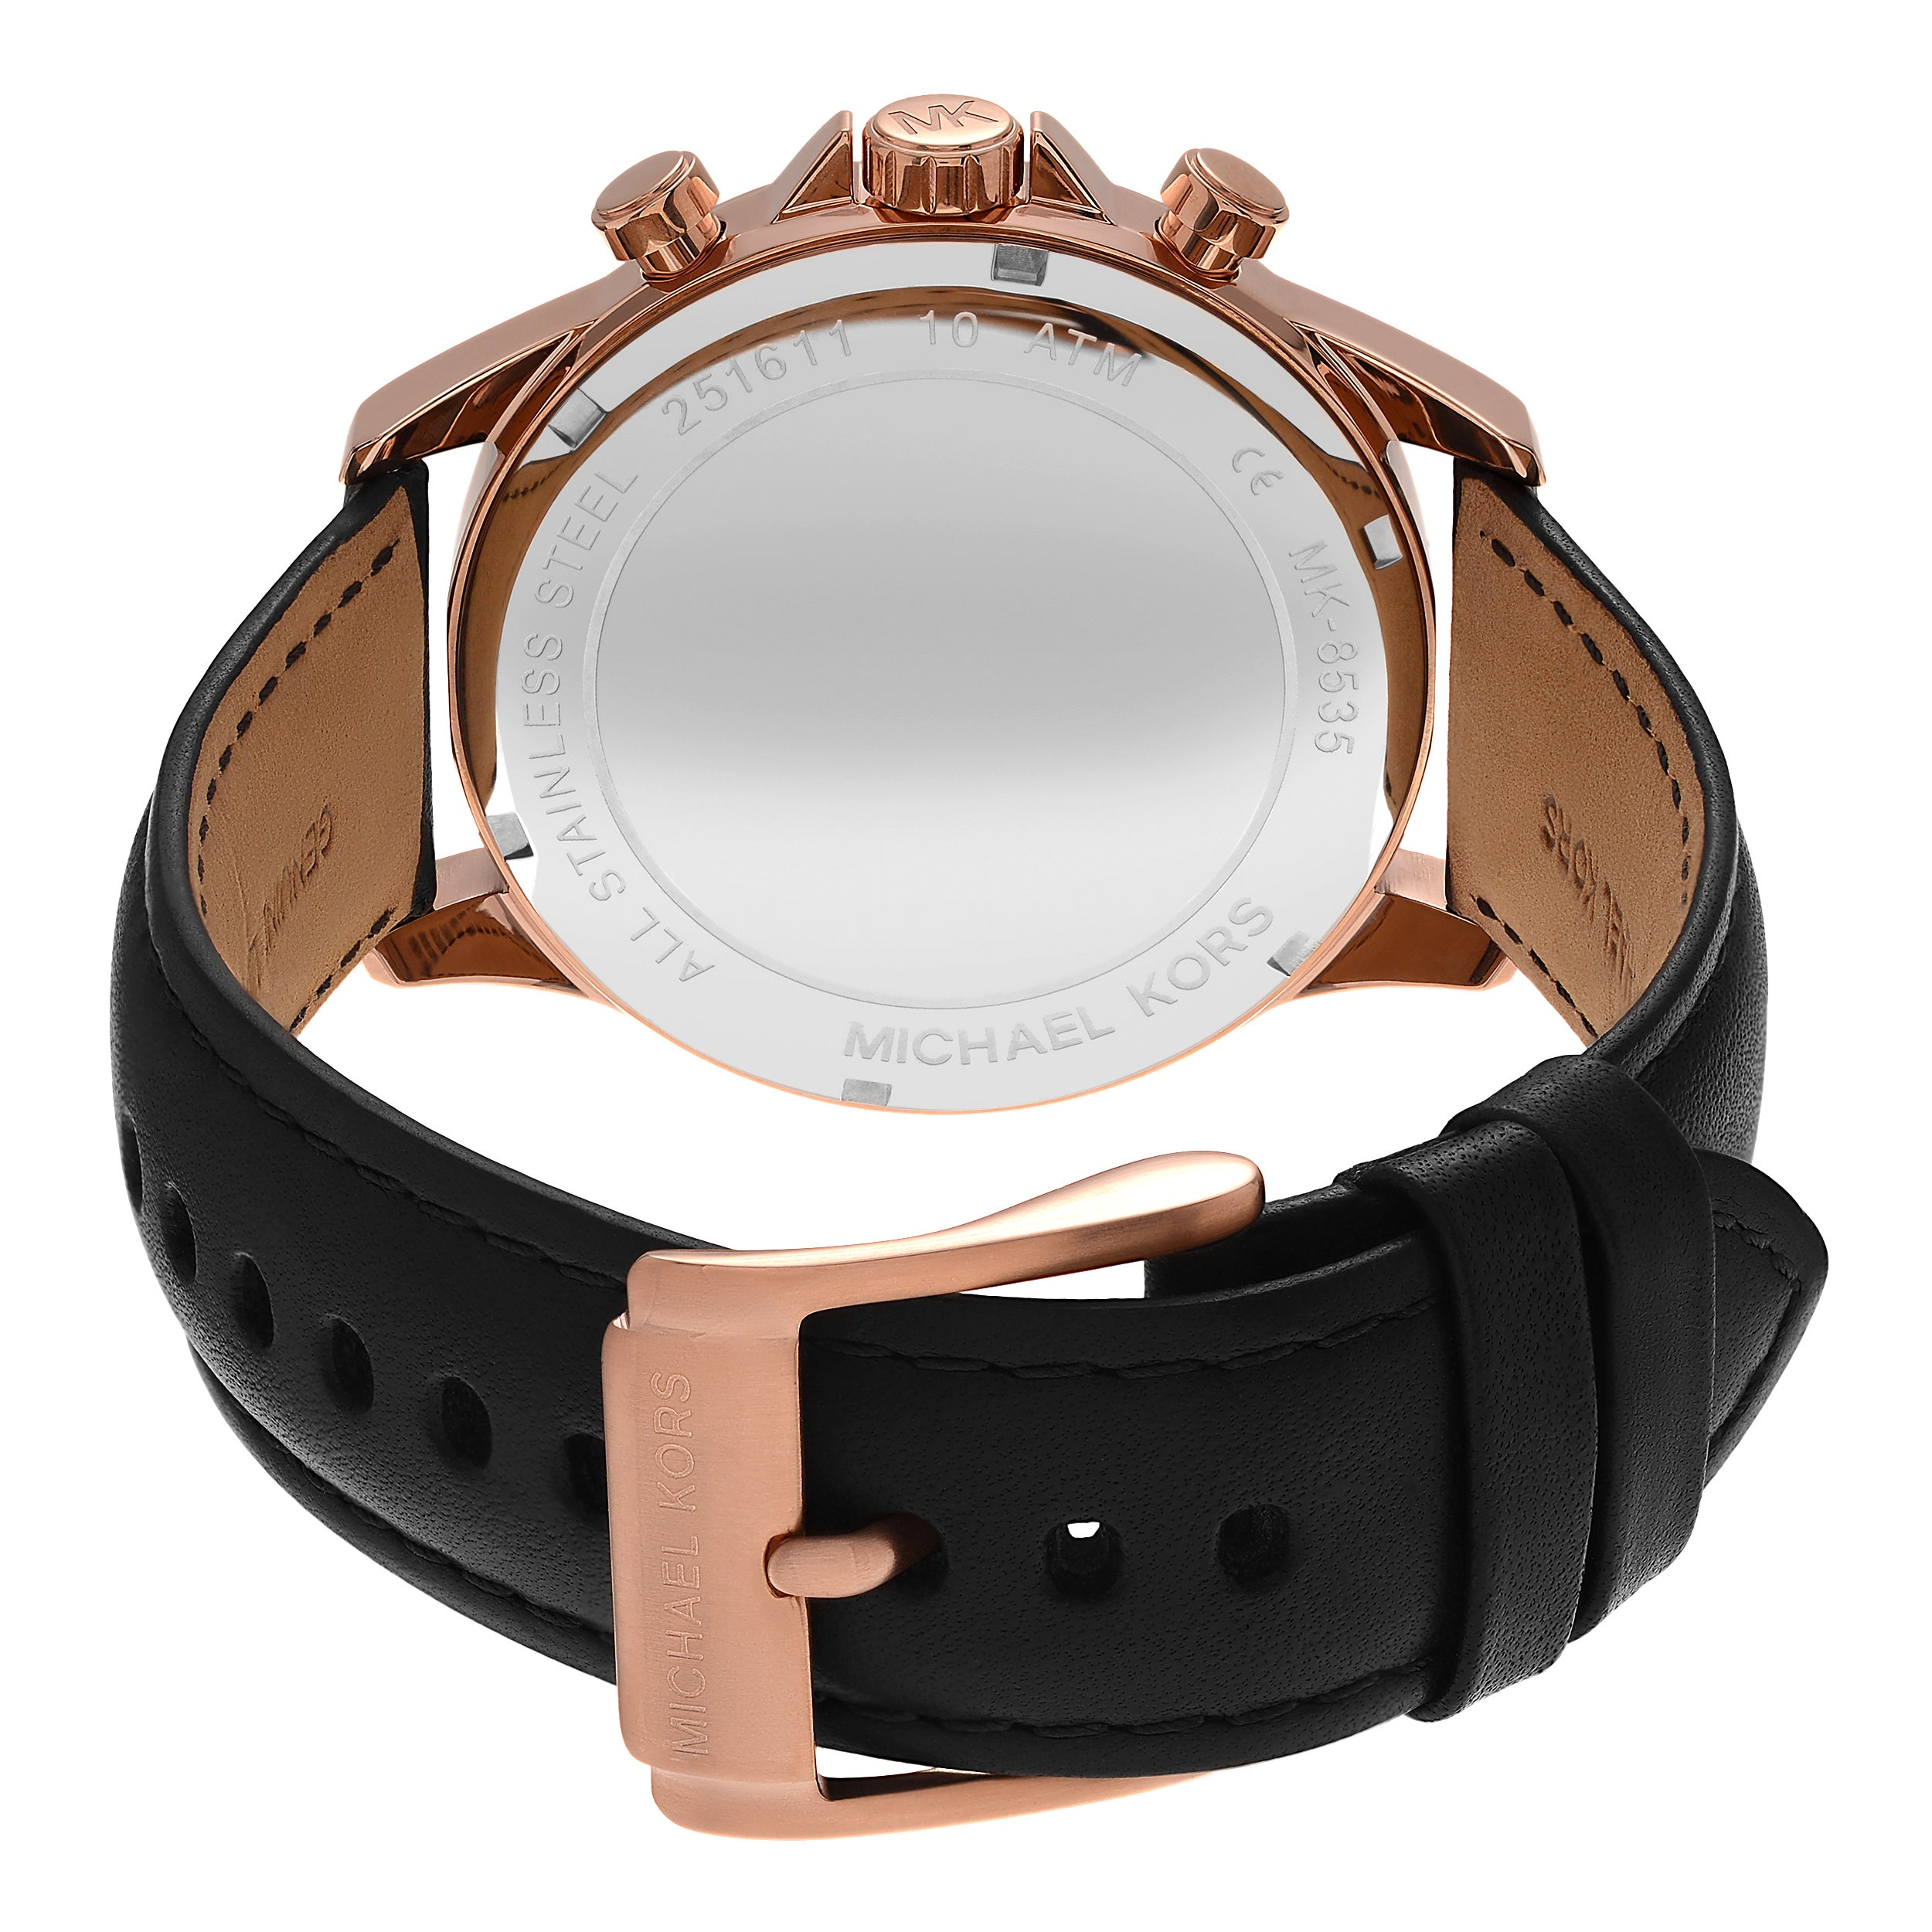 50583e82bfe2 Shop Michael Kors Men s MK8535  Gage  Rose Goldtone Stainless Steel  Chronograph Black Leather Strap Watch - Free Shipping Today - Overstock -  14803589